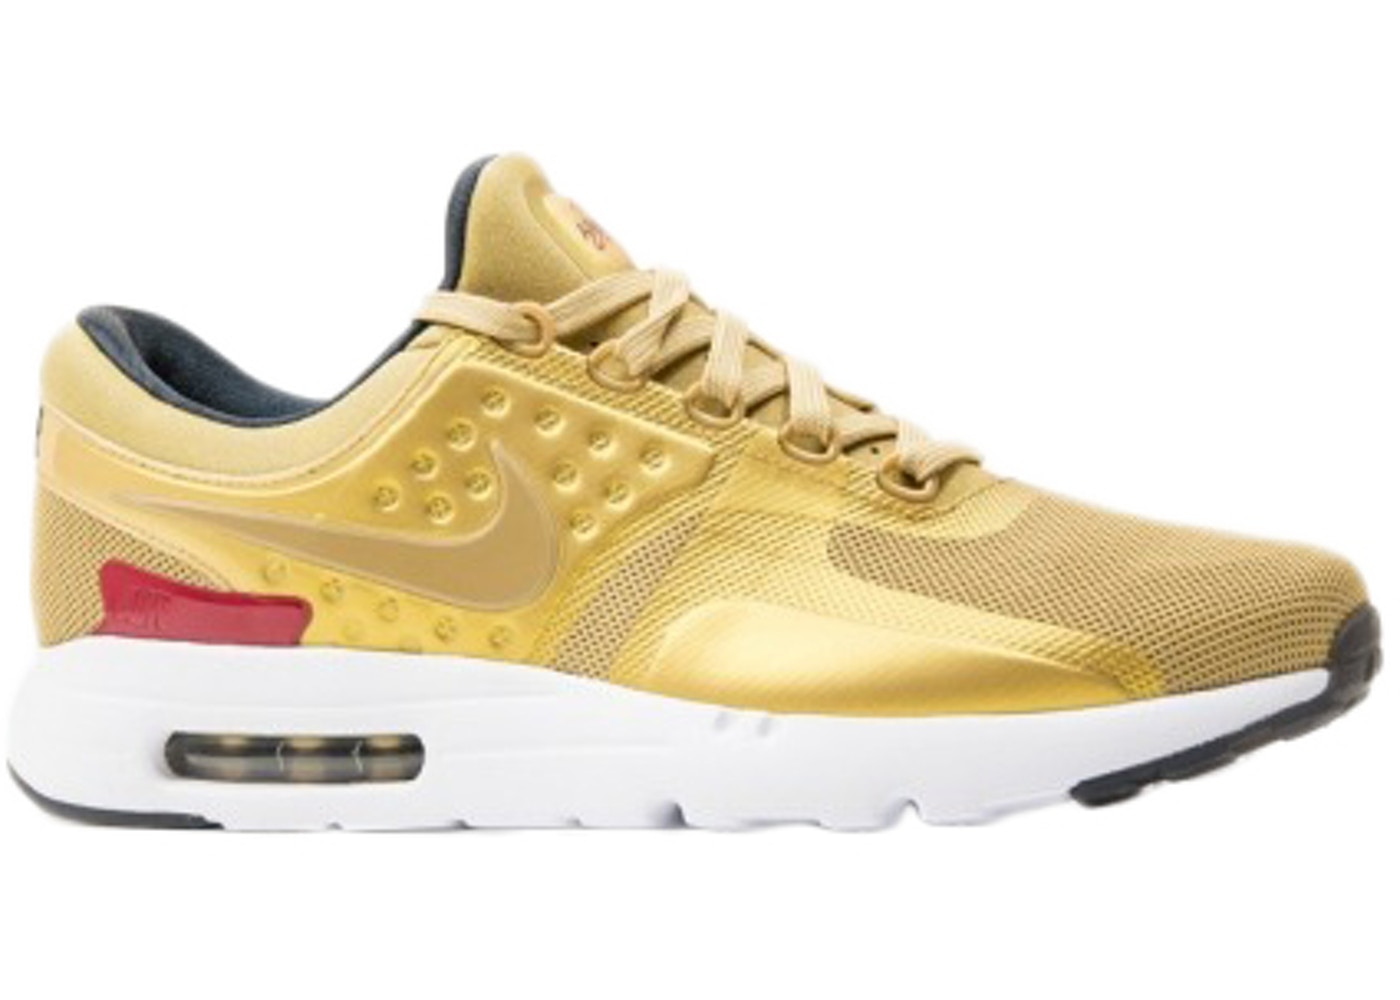 cheap for discount 5f228 1b30e Air Max Zero Metallic Gold (W) - 863700-700